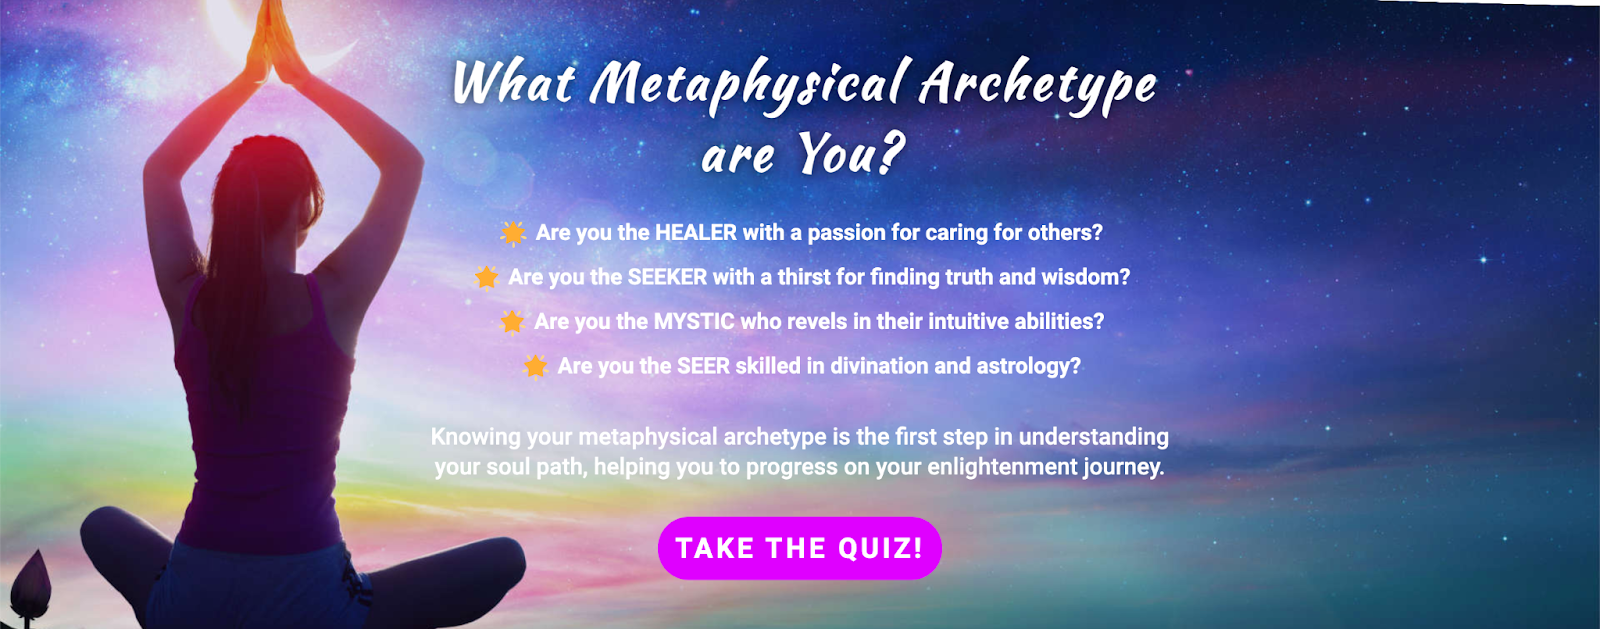 hero image with what type of metaphysical archetype and CTA of take the quiz